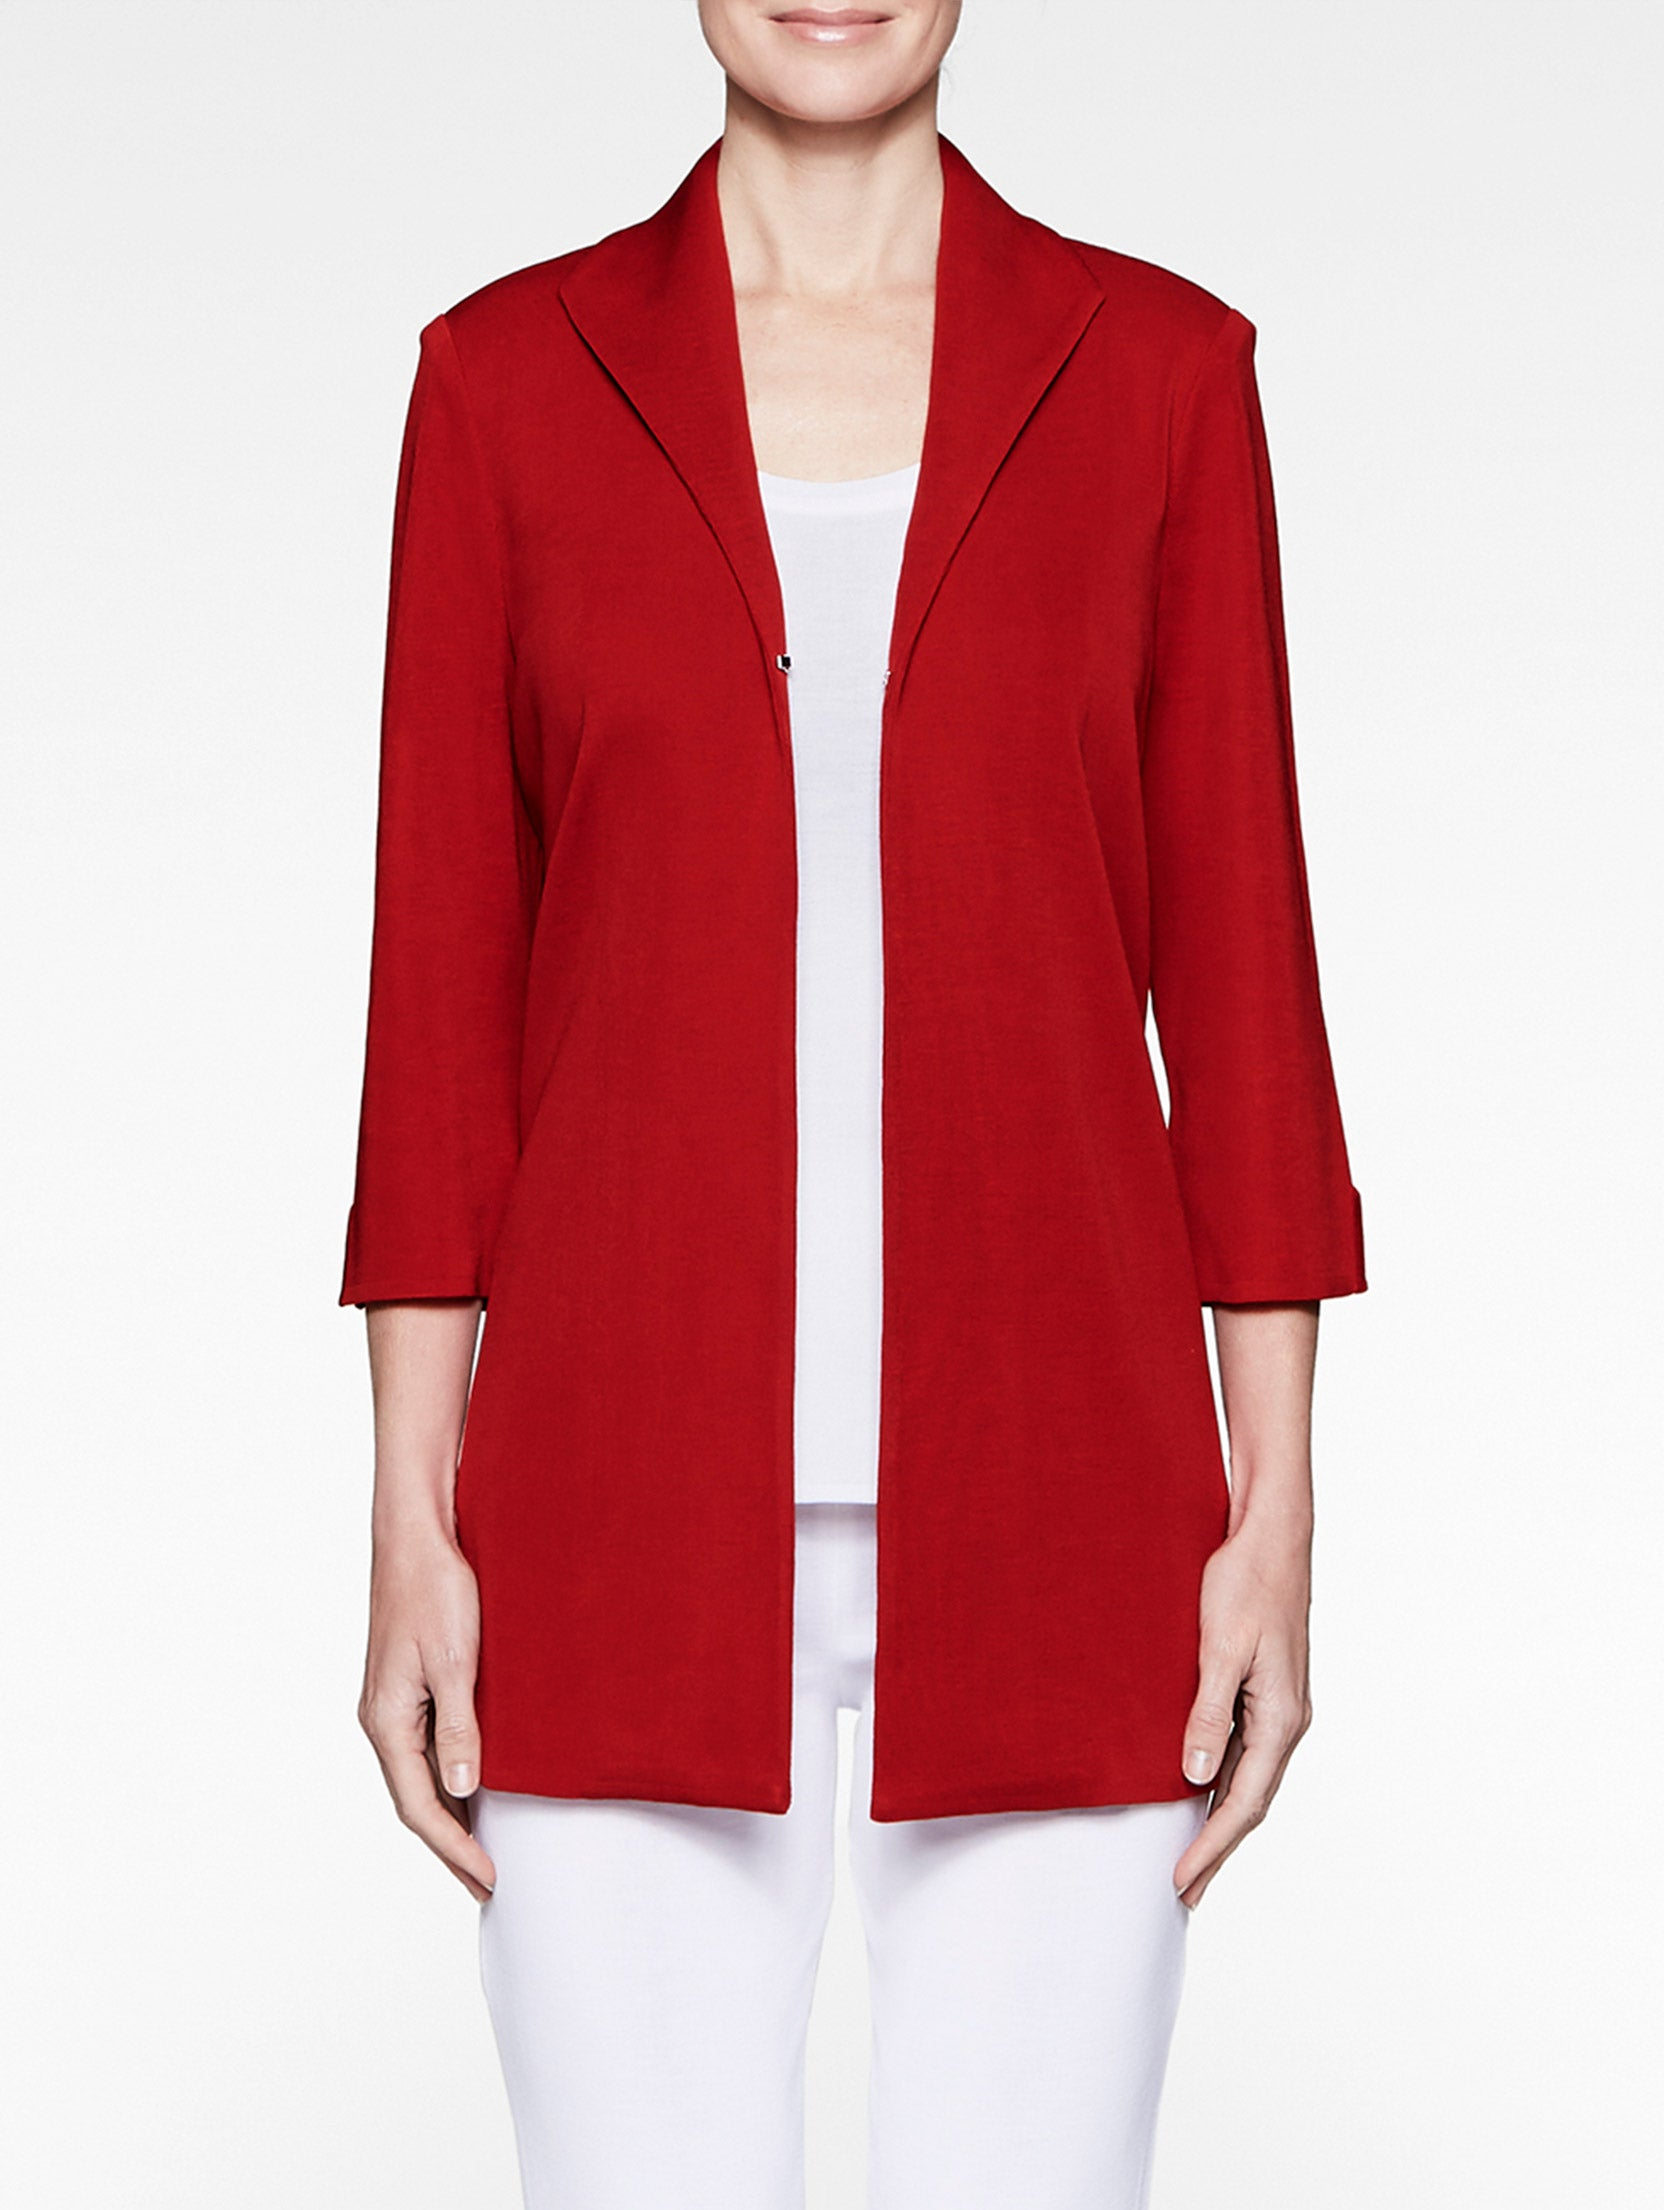 Wing Collar Swing Knit Jacket, Red